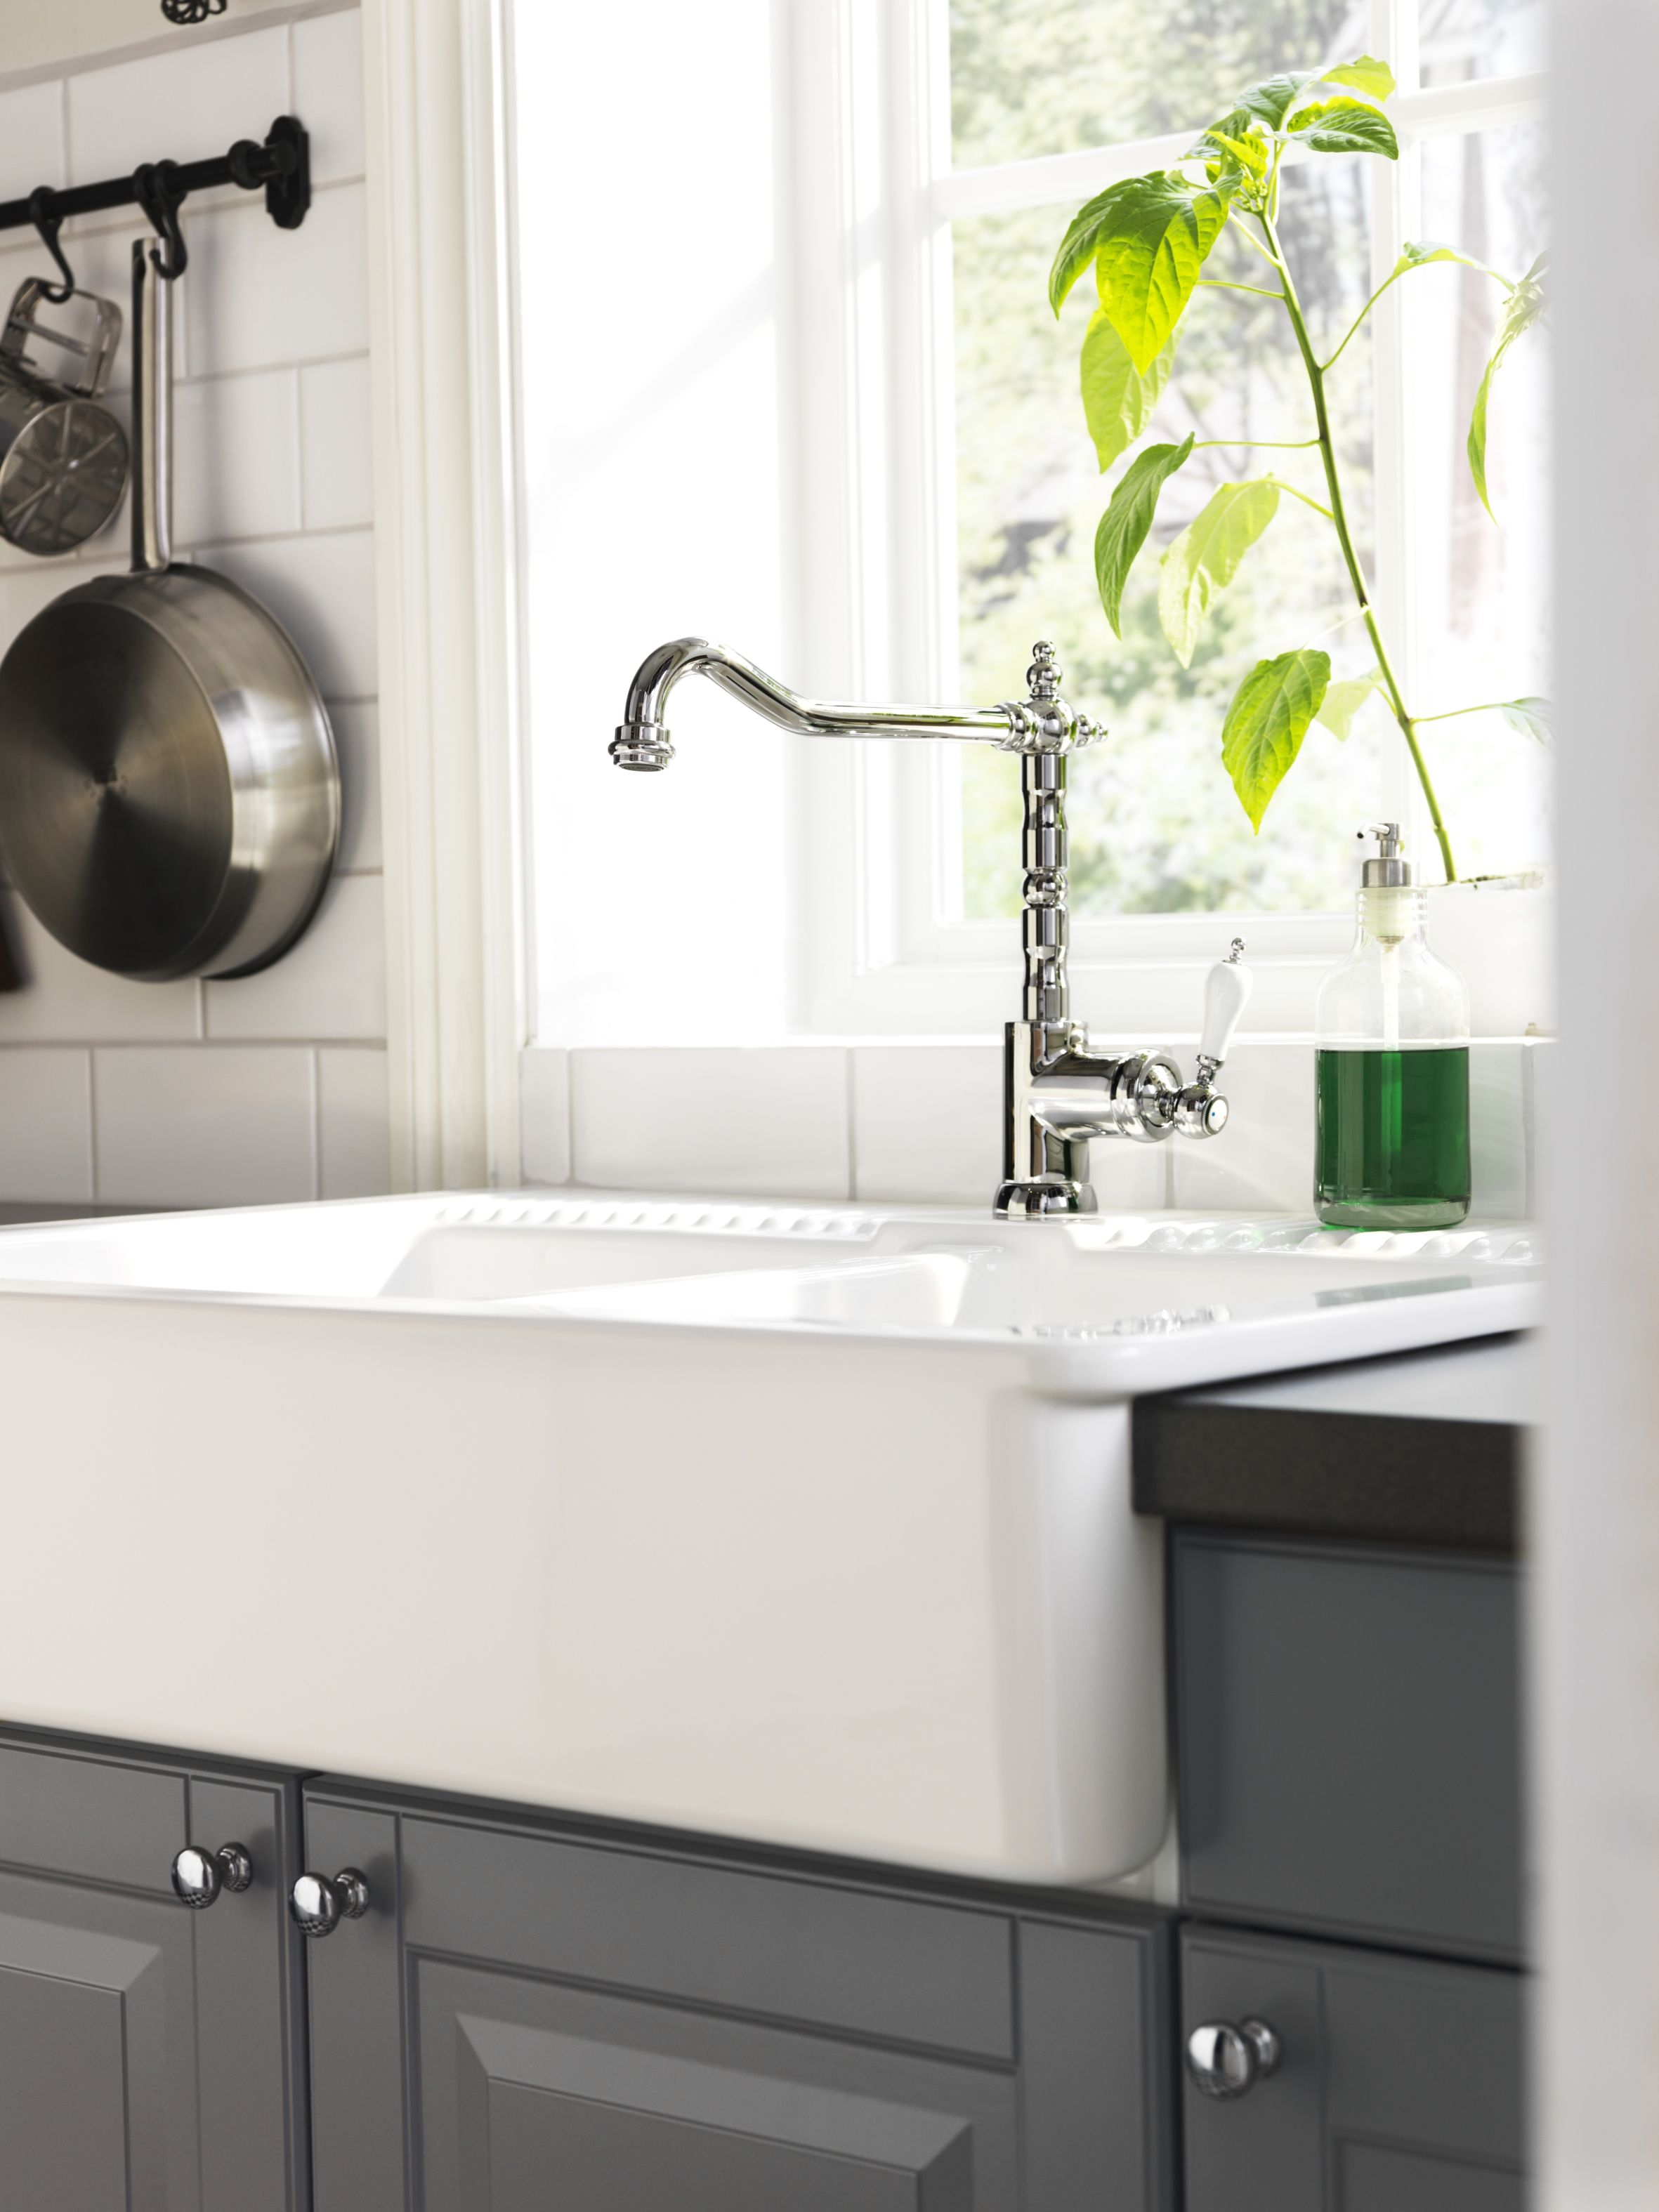 Add Style To Your Kitchen With The Chrome Plated Glittran Sink